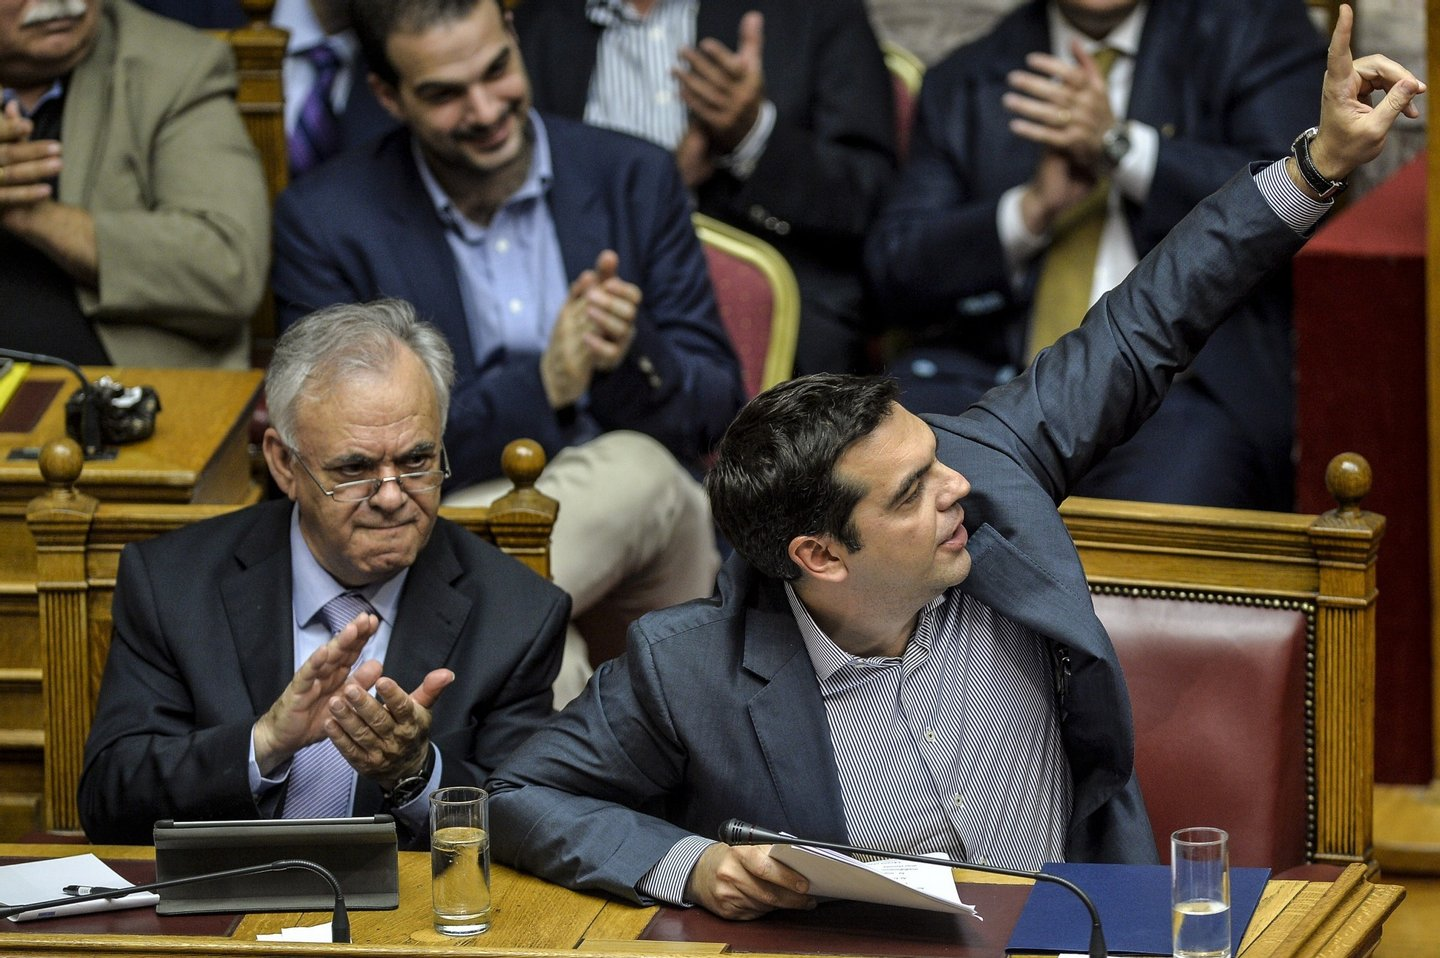 Greek Prime Minister Alexis Tsipras (R) gestures at a joint session of four committees of the Parliament (Economic, Social, Public Administration and Production and Trade) at the Greek Parliament in Athens on July 10, 2015. Lawmakers in Greece are to vote whether to back a last-ditch reform plan the government submitted to creditors overnight in a bid to stave off financial collapse and exit from the Eurozone. Greece's international creditors believe its latest debt proposals are positive enough to be the basis for a new bailout worth 74 billion euros, an EU source said June 10. AFP PHOTO/ANDREAS SOLARO        (Photo credit should read ANDREAS SOLARO/AFP/Getty Images)